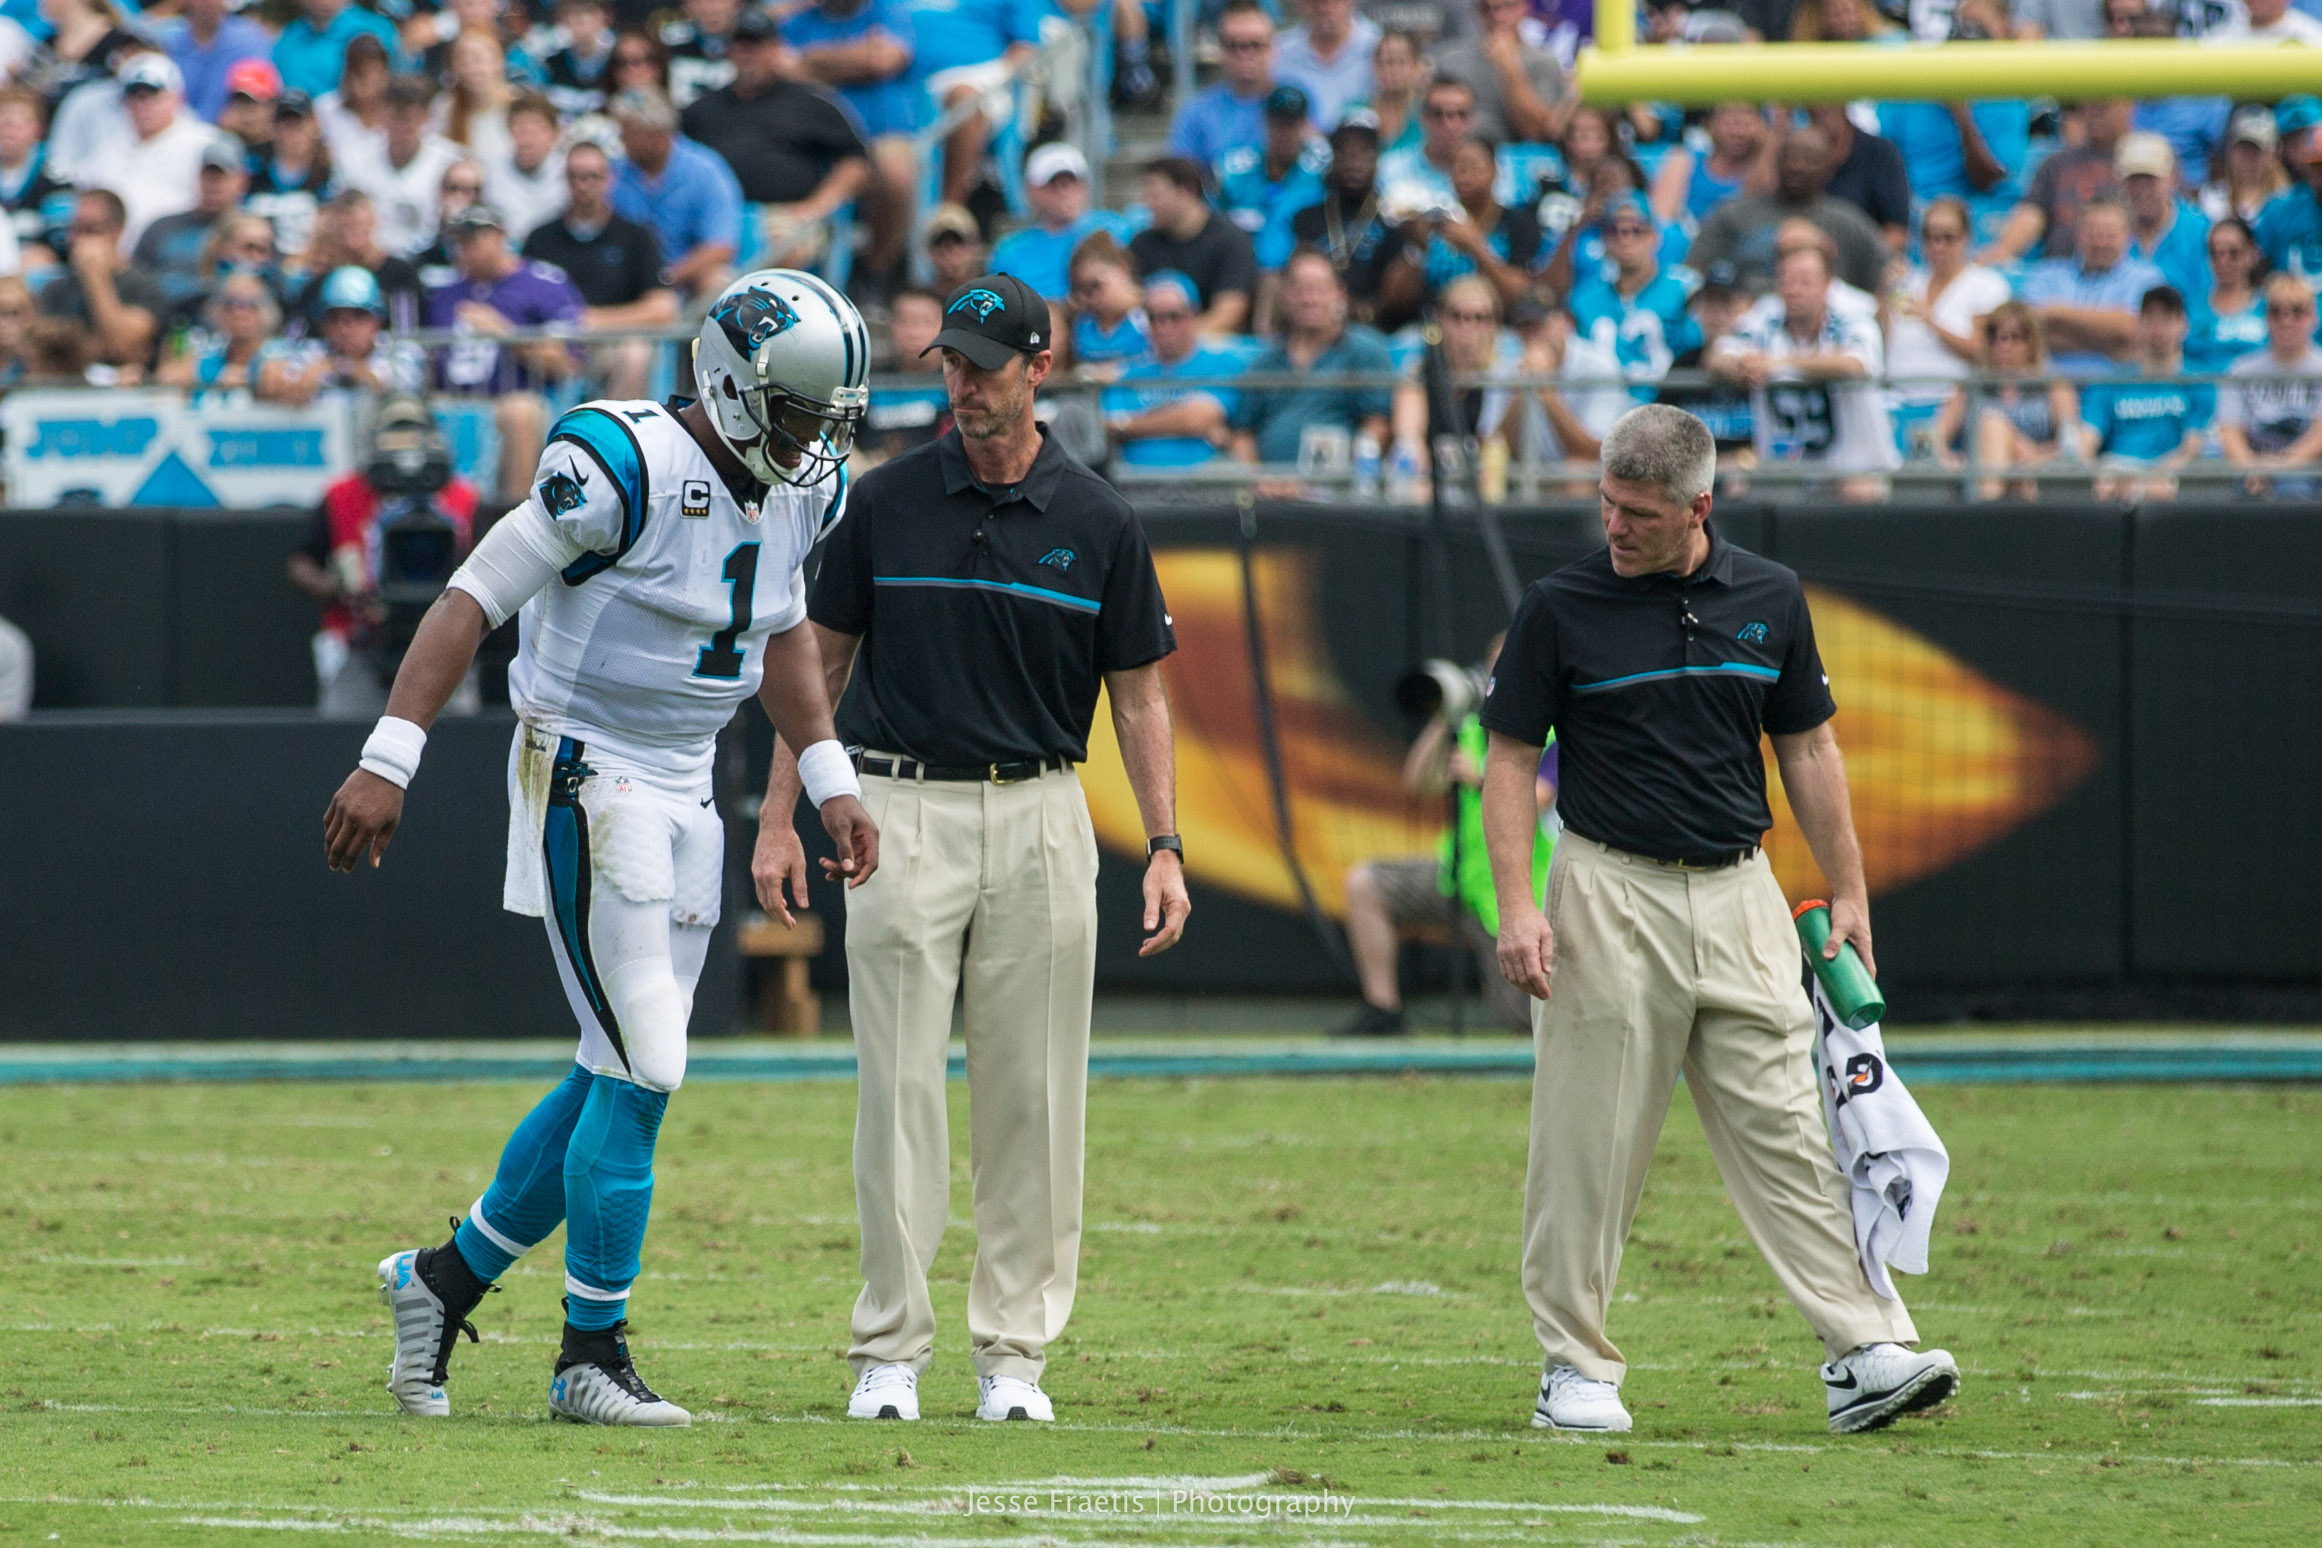 A limping Cam assisted off the field by doctors.